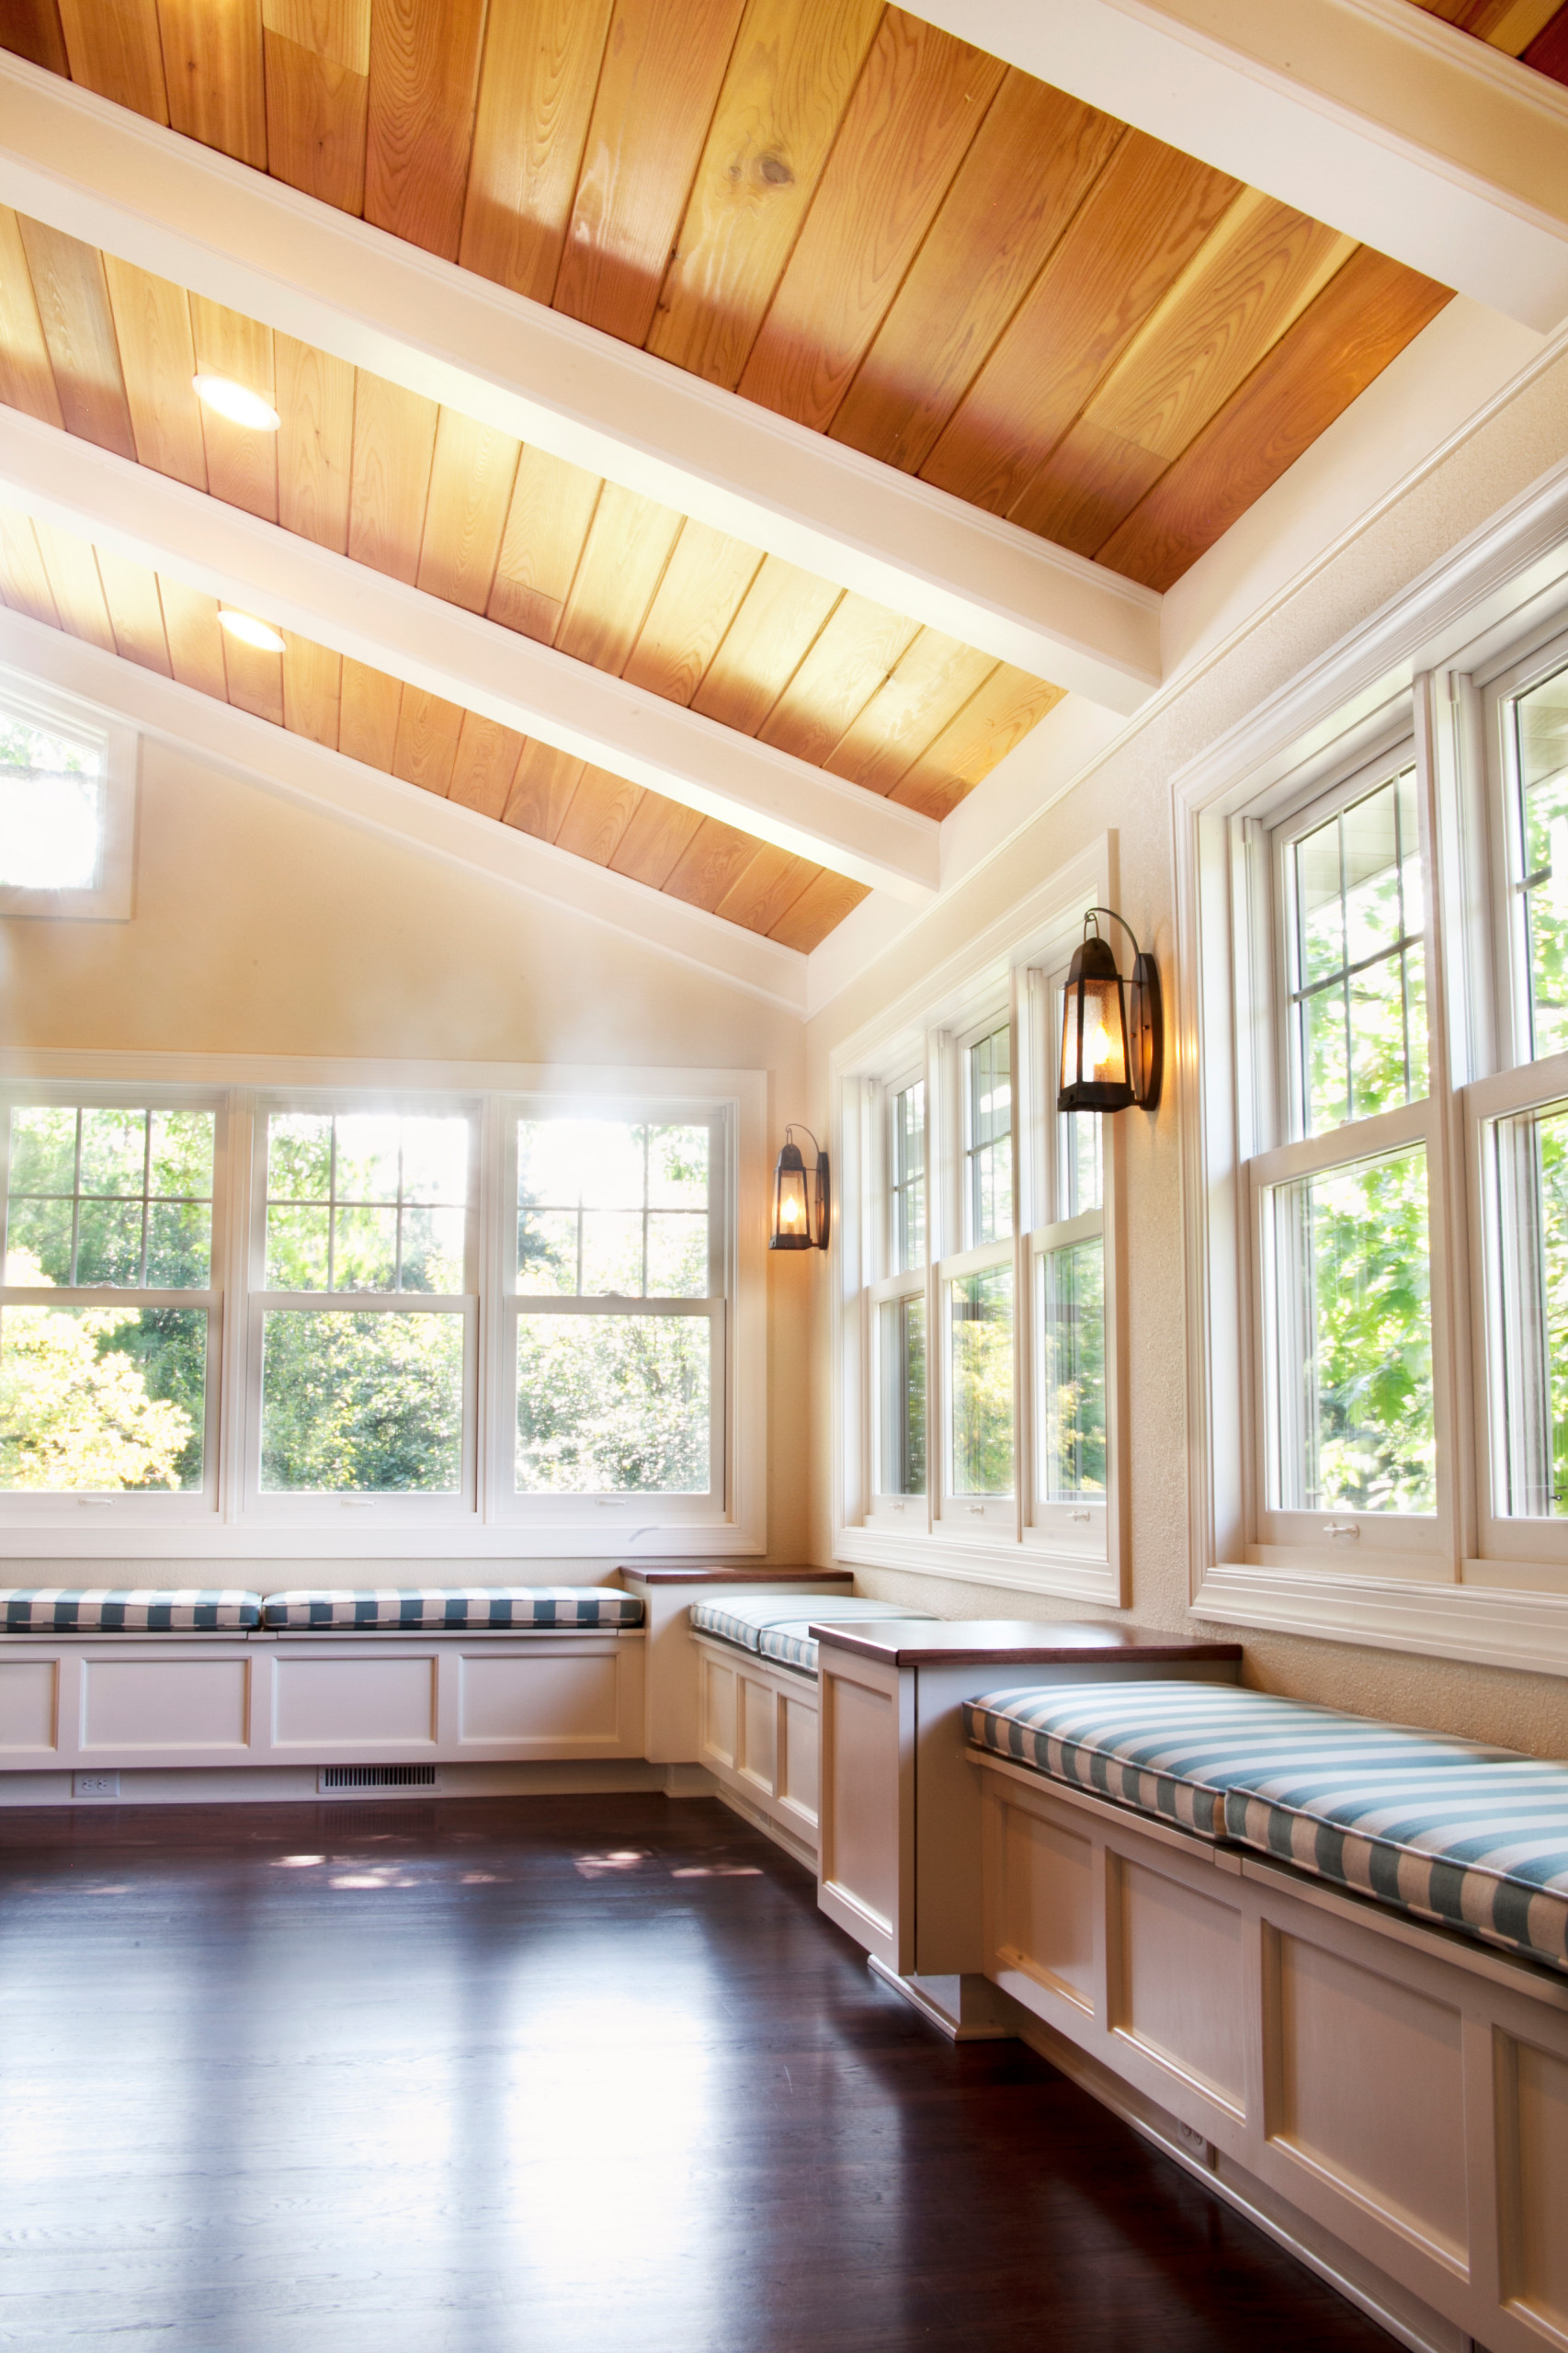 75 Beautiful Sunroom Pictures Ideas February 2021 Houzz